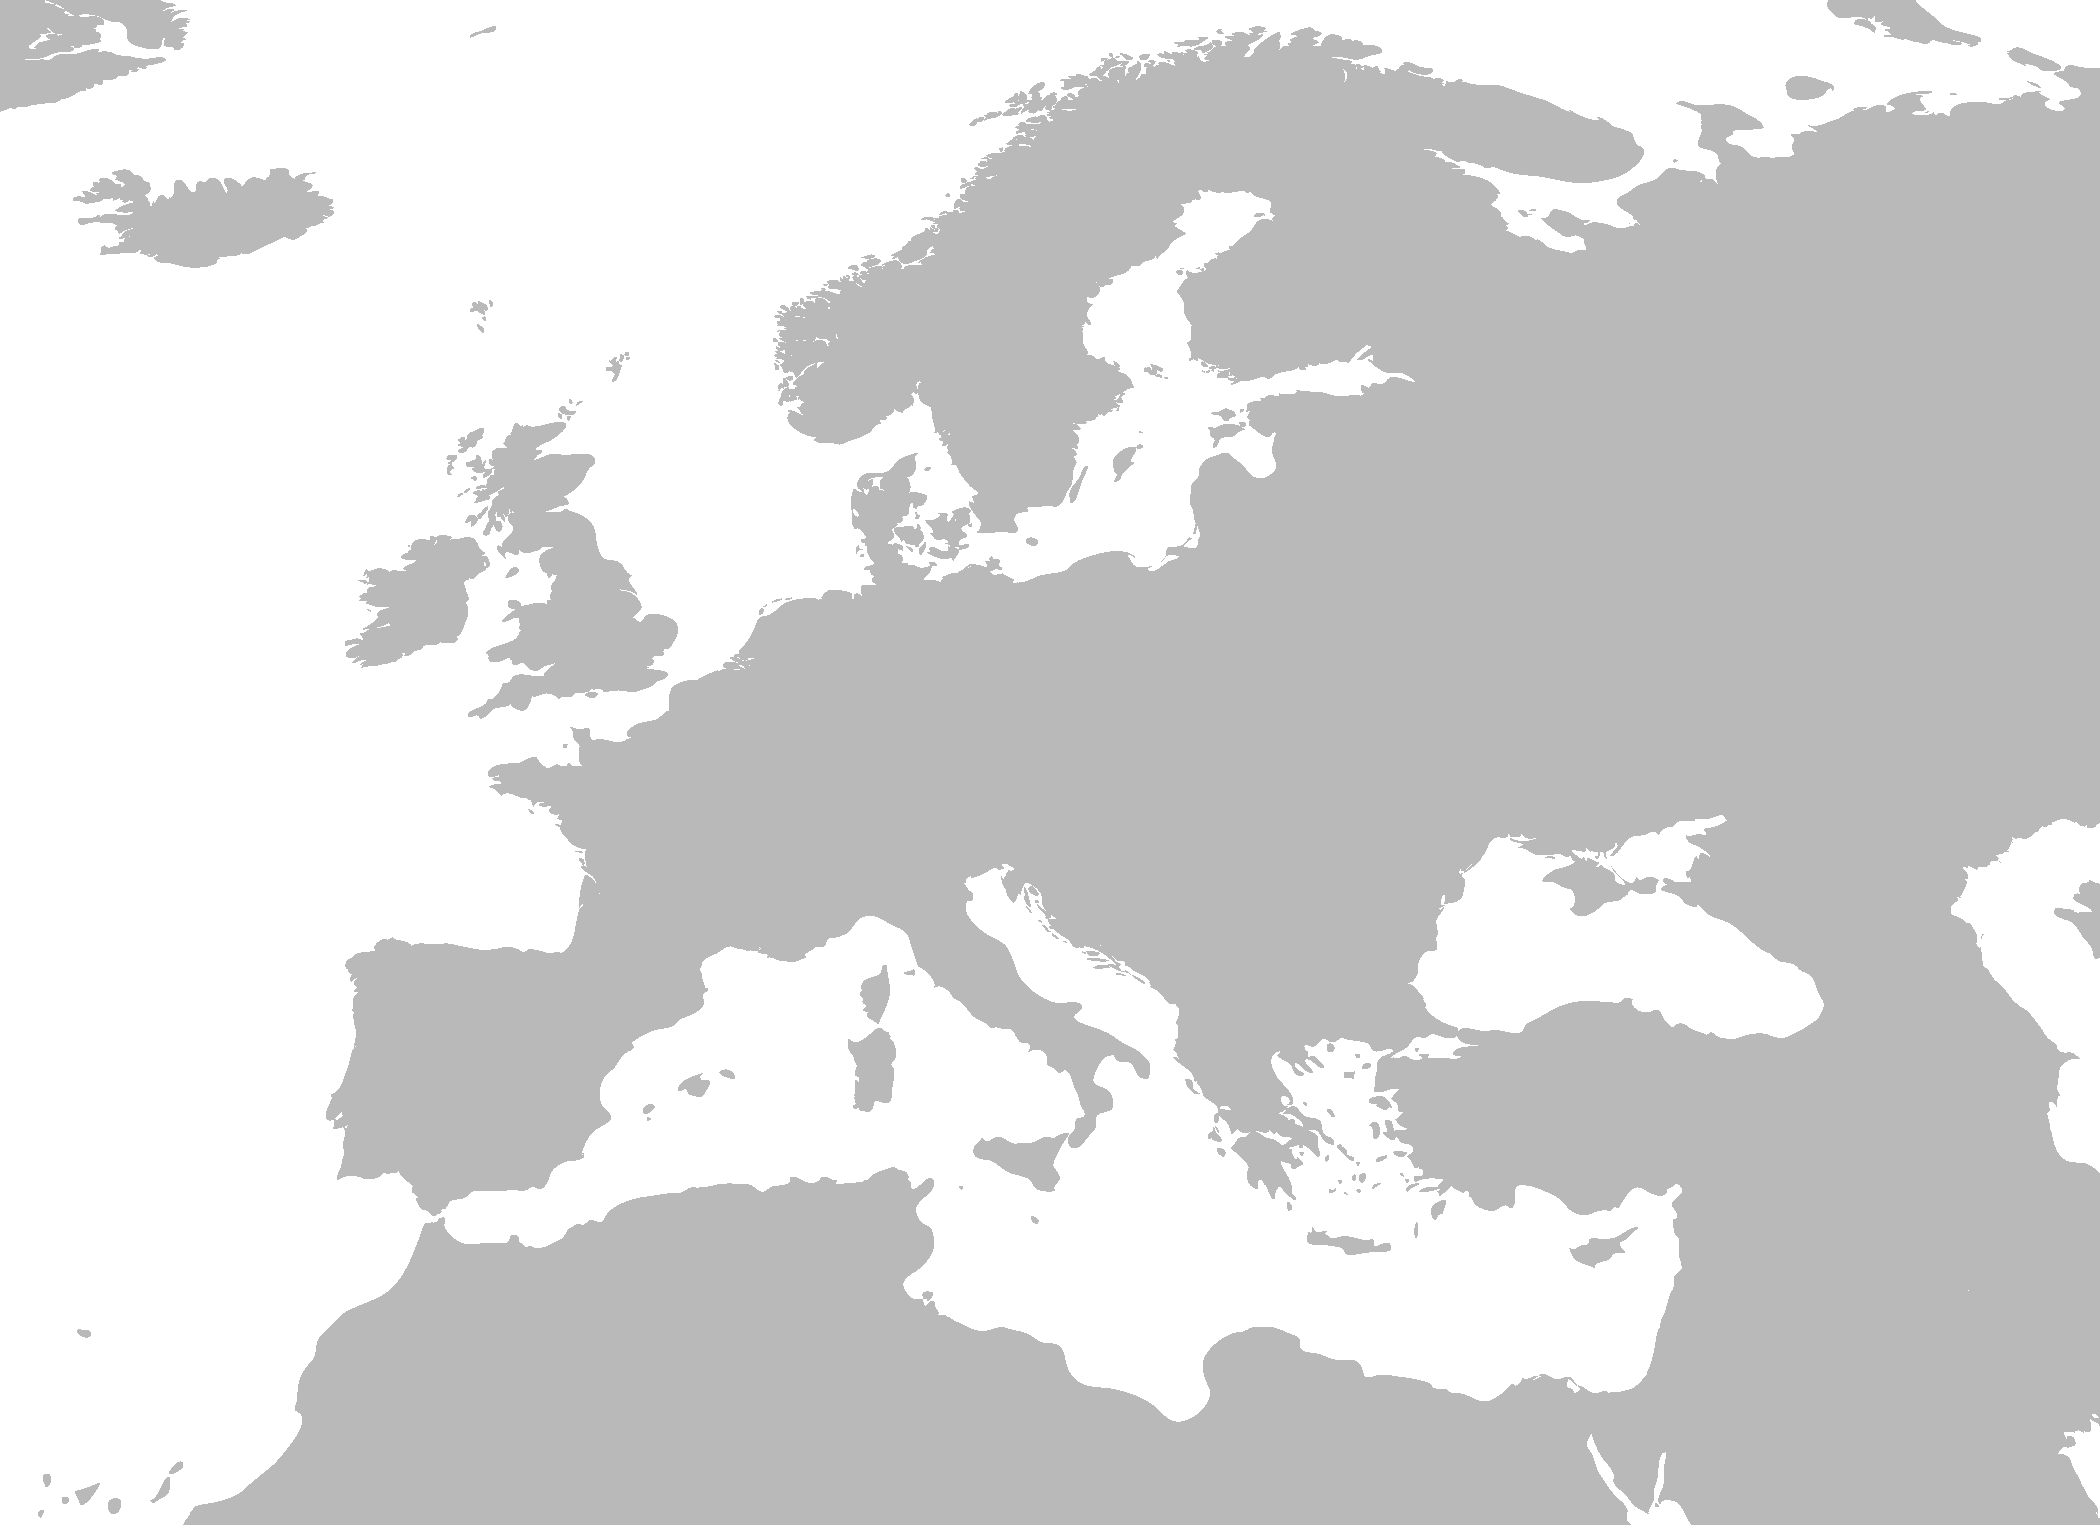 FileBlankMapEuropevpng Wikimedia Commons - Europe blank map